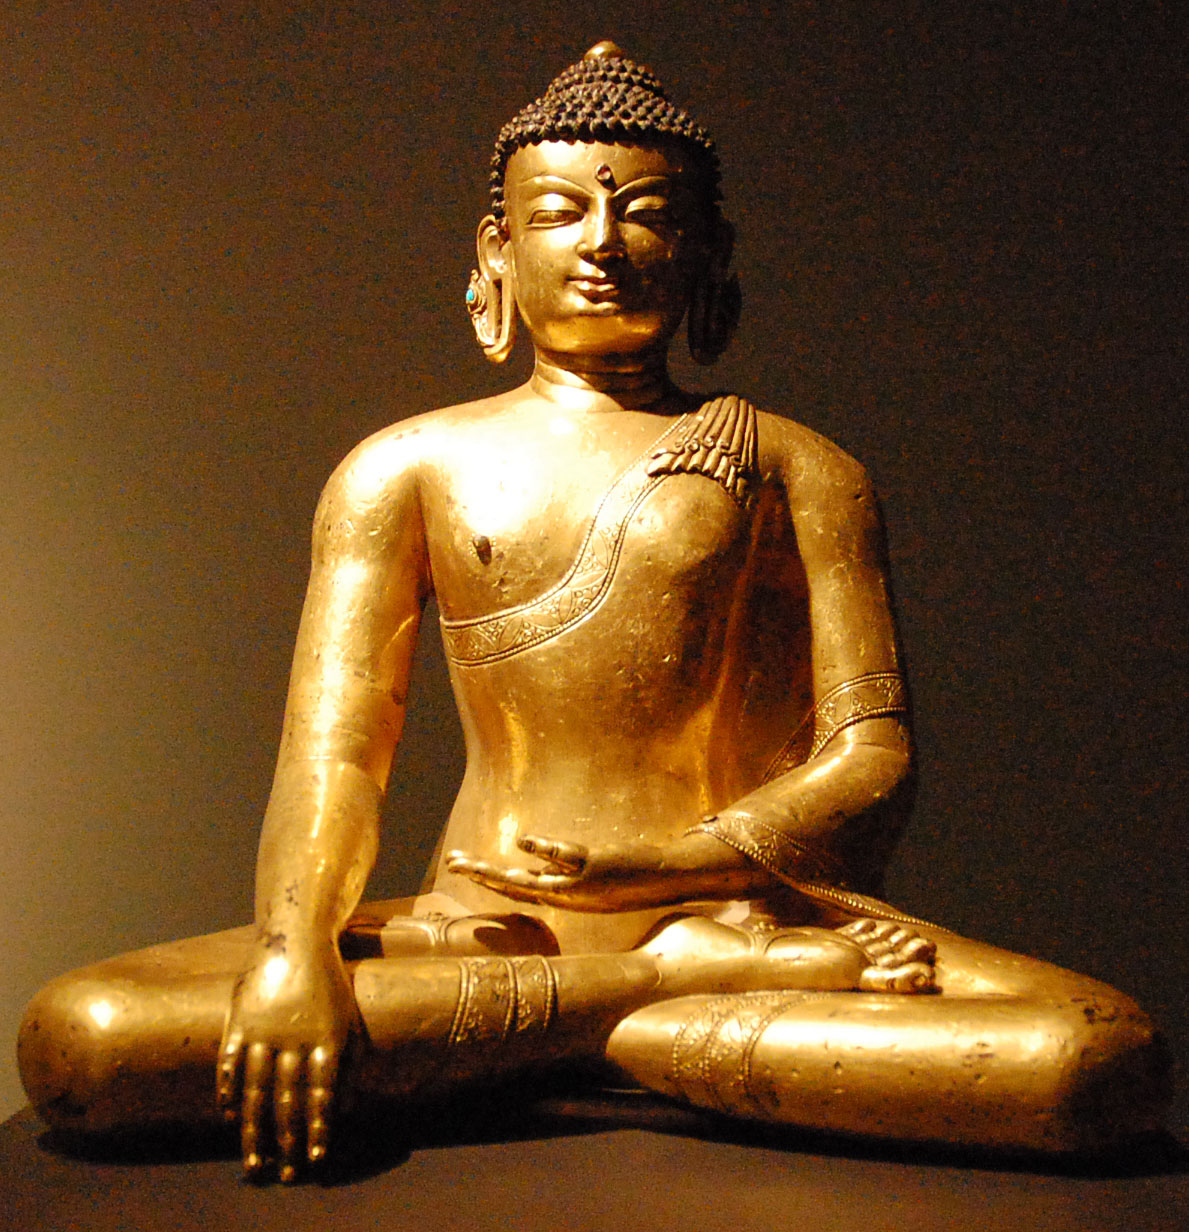 the life and journey to enlightenment of gautama siddhartha The buddha programme length 1 hour screening details monday 24 march at 930am est/ nz this program relates the journey to enlightenment of the prince siddhartha gautama, from indulgence to ascetism, and eventually to nirvana.